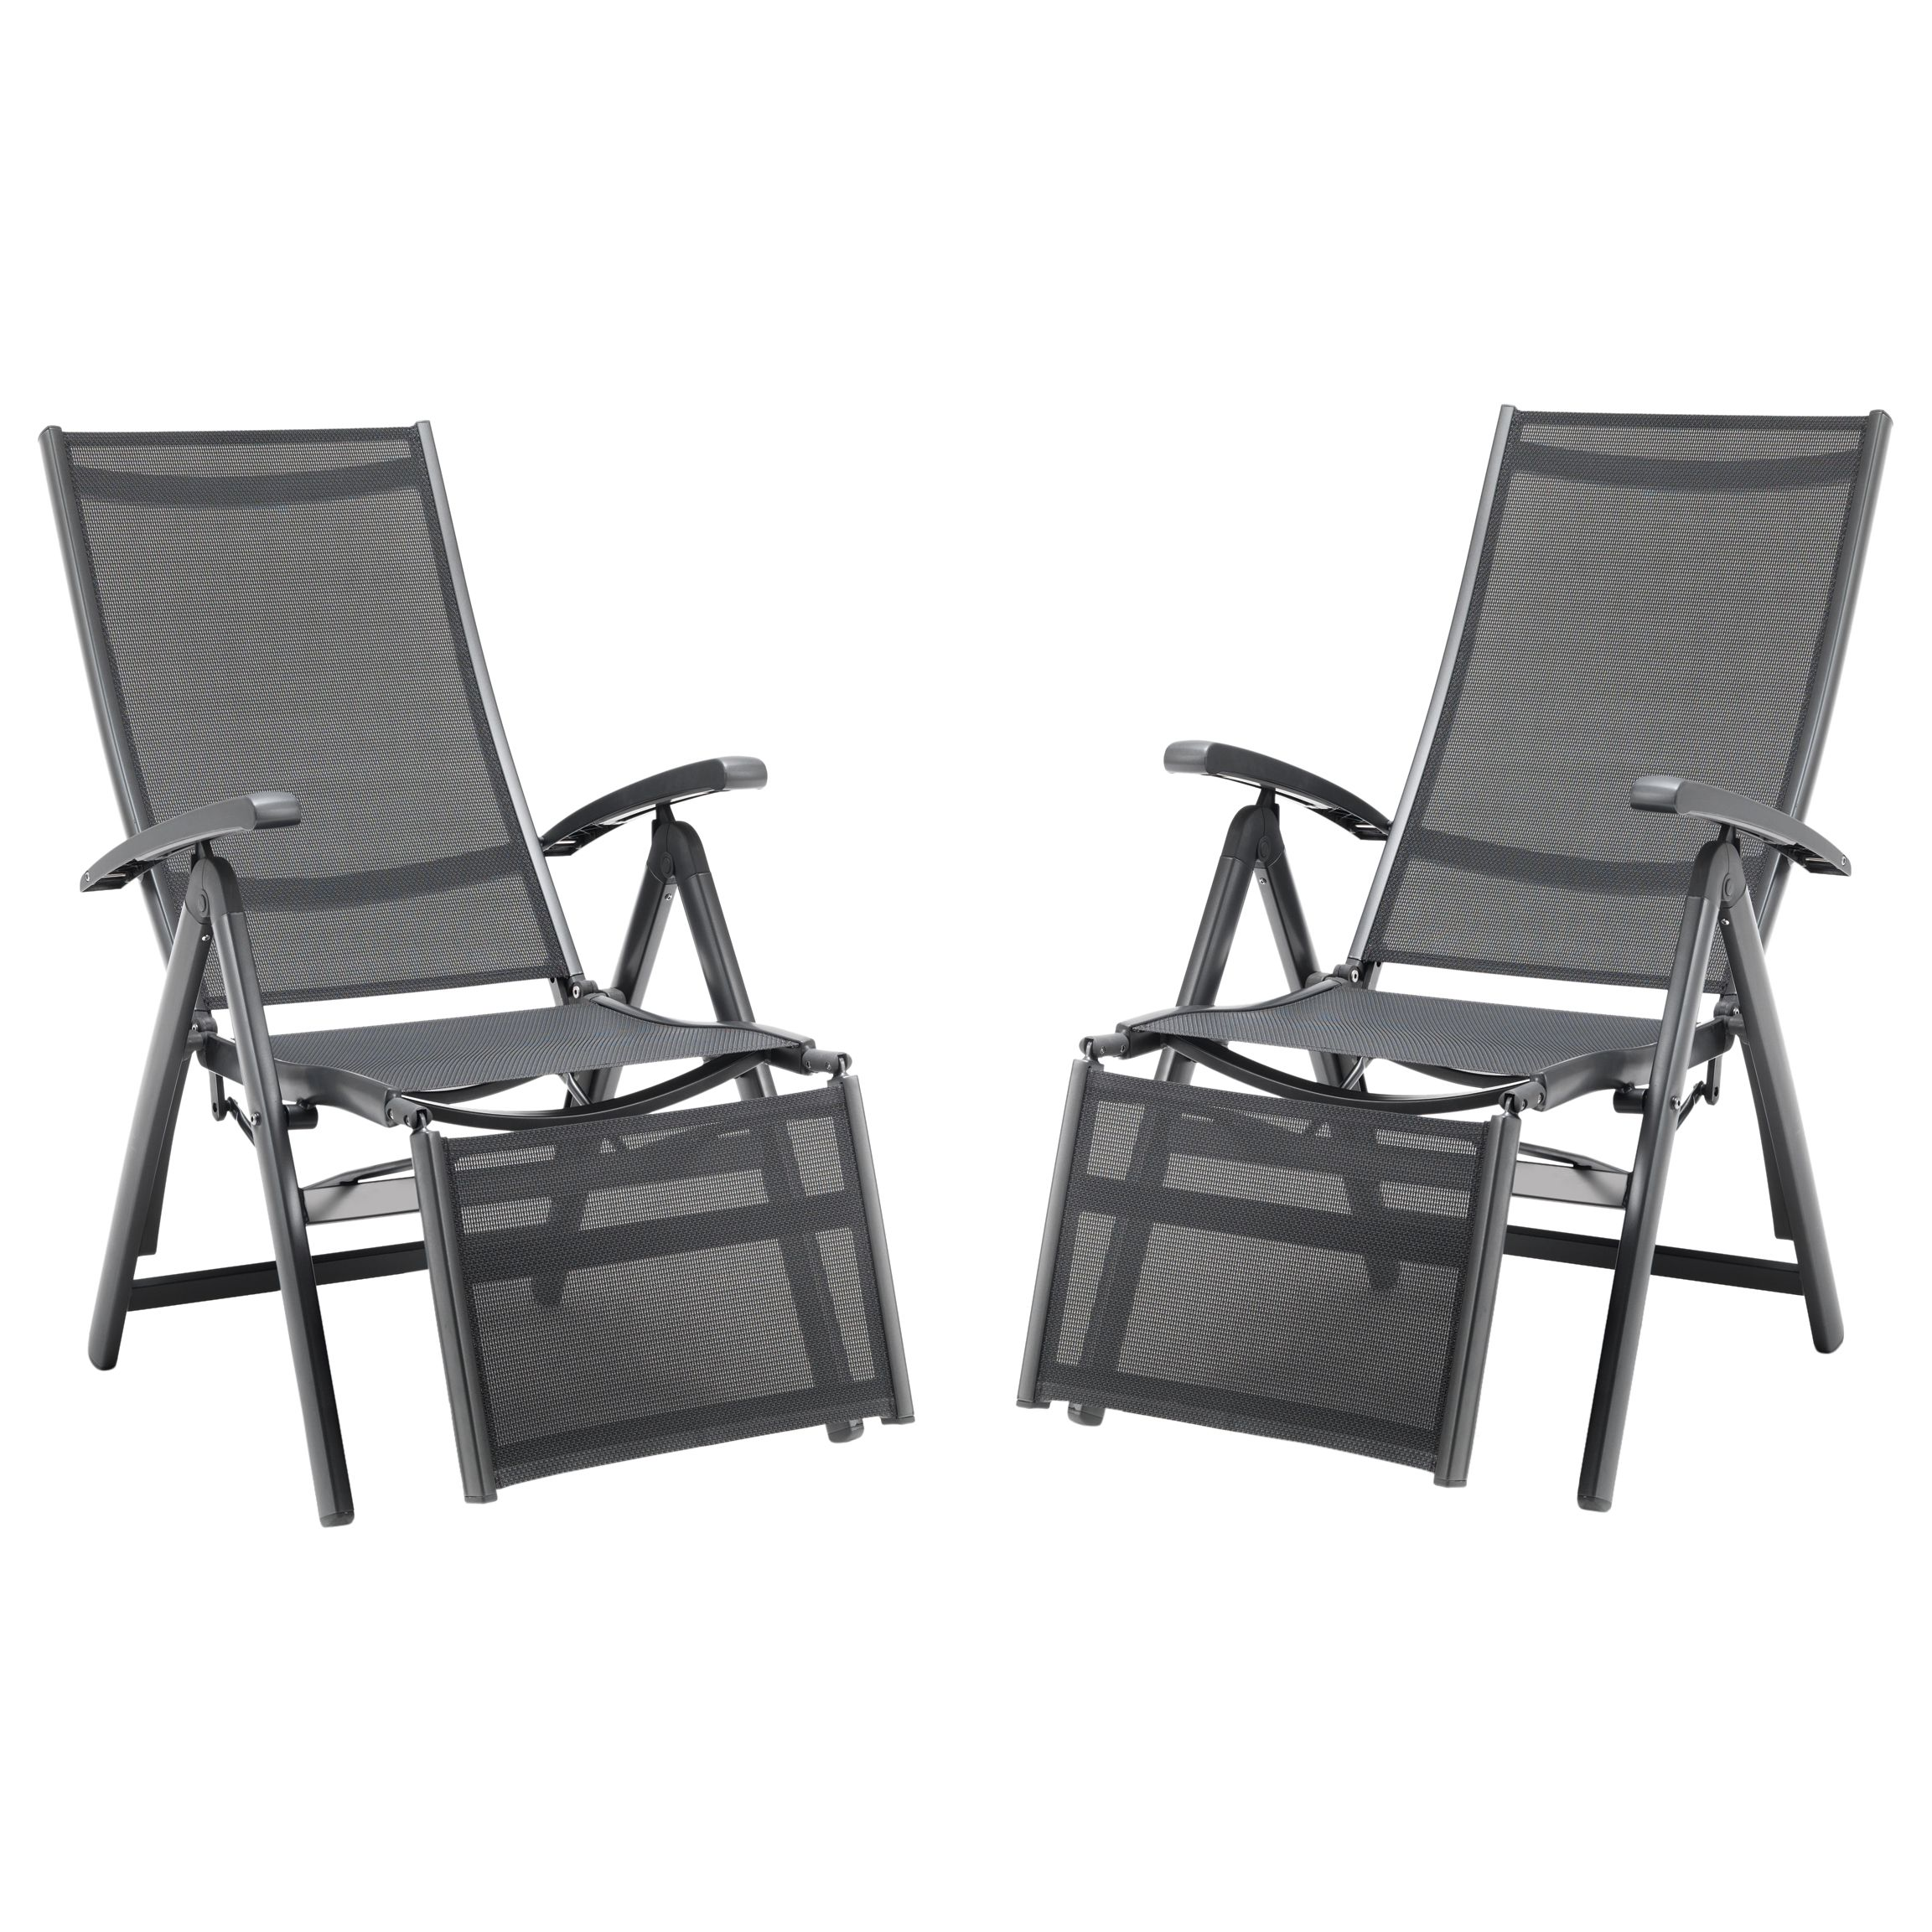 Kettler KETTLER Surf Multi Relaxer Adjustable Sun Loungers, Grey, Set of 2